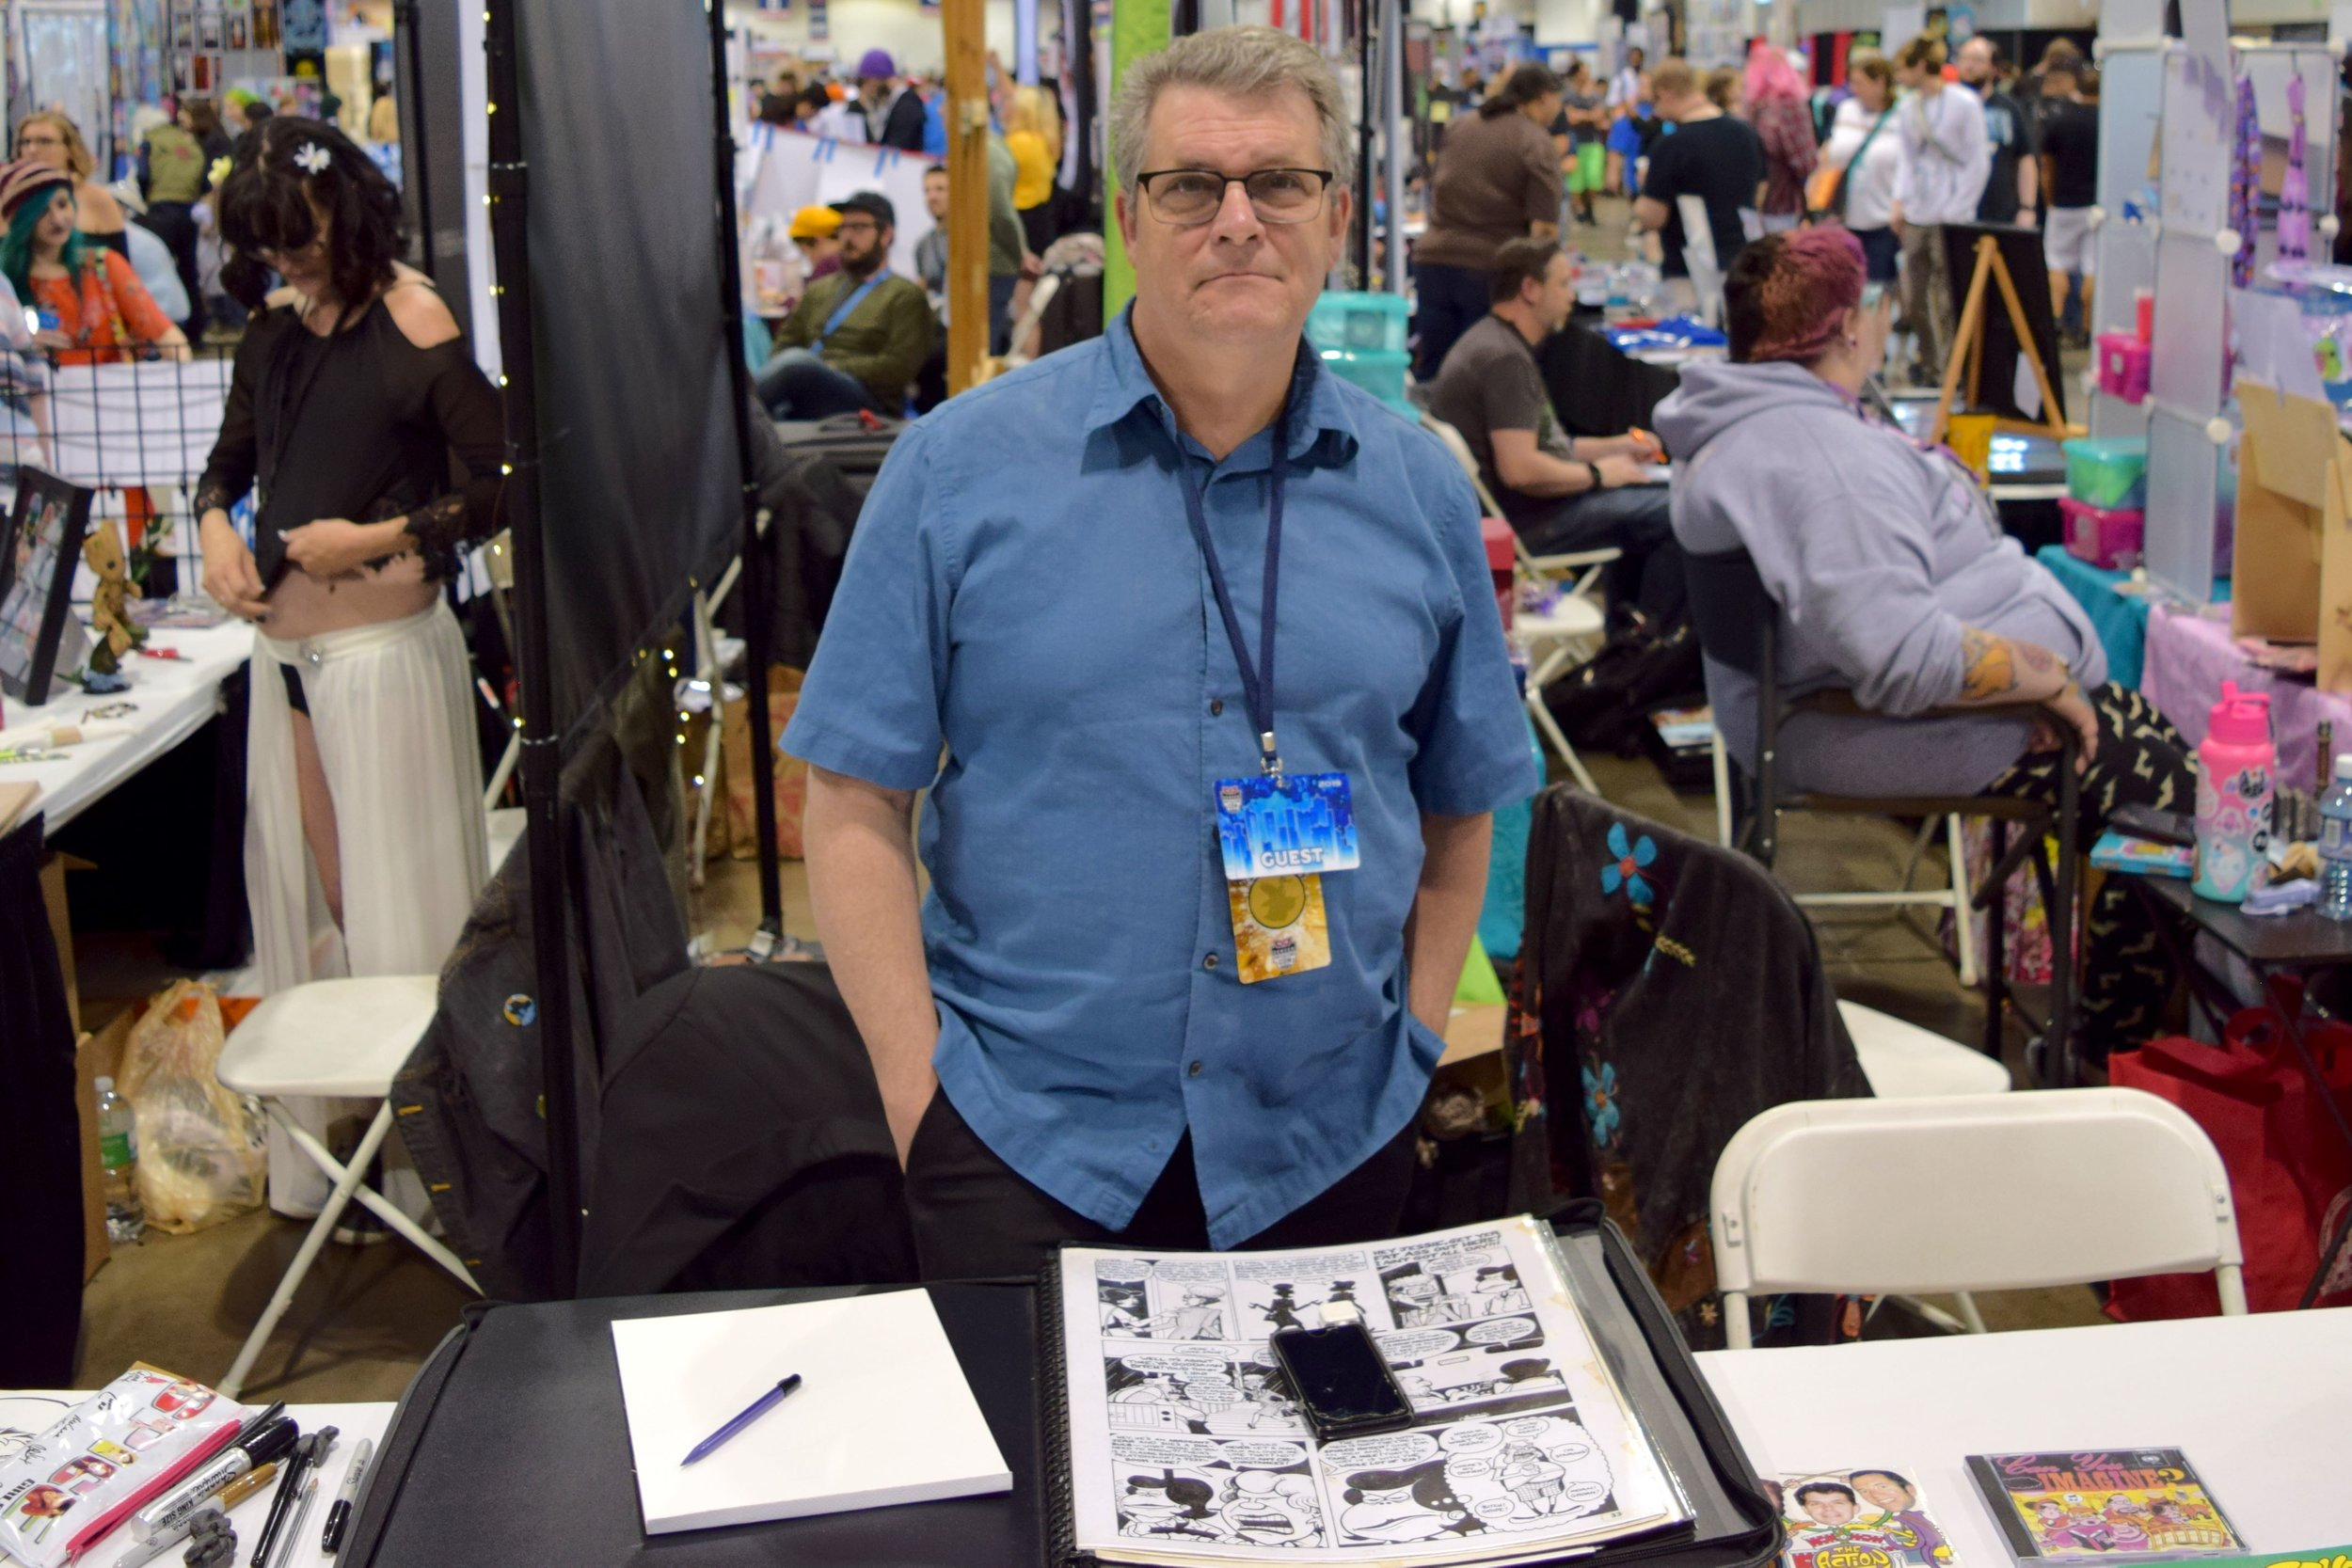 Peter Bagge in Denver, June 2019.